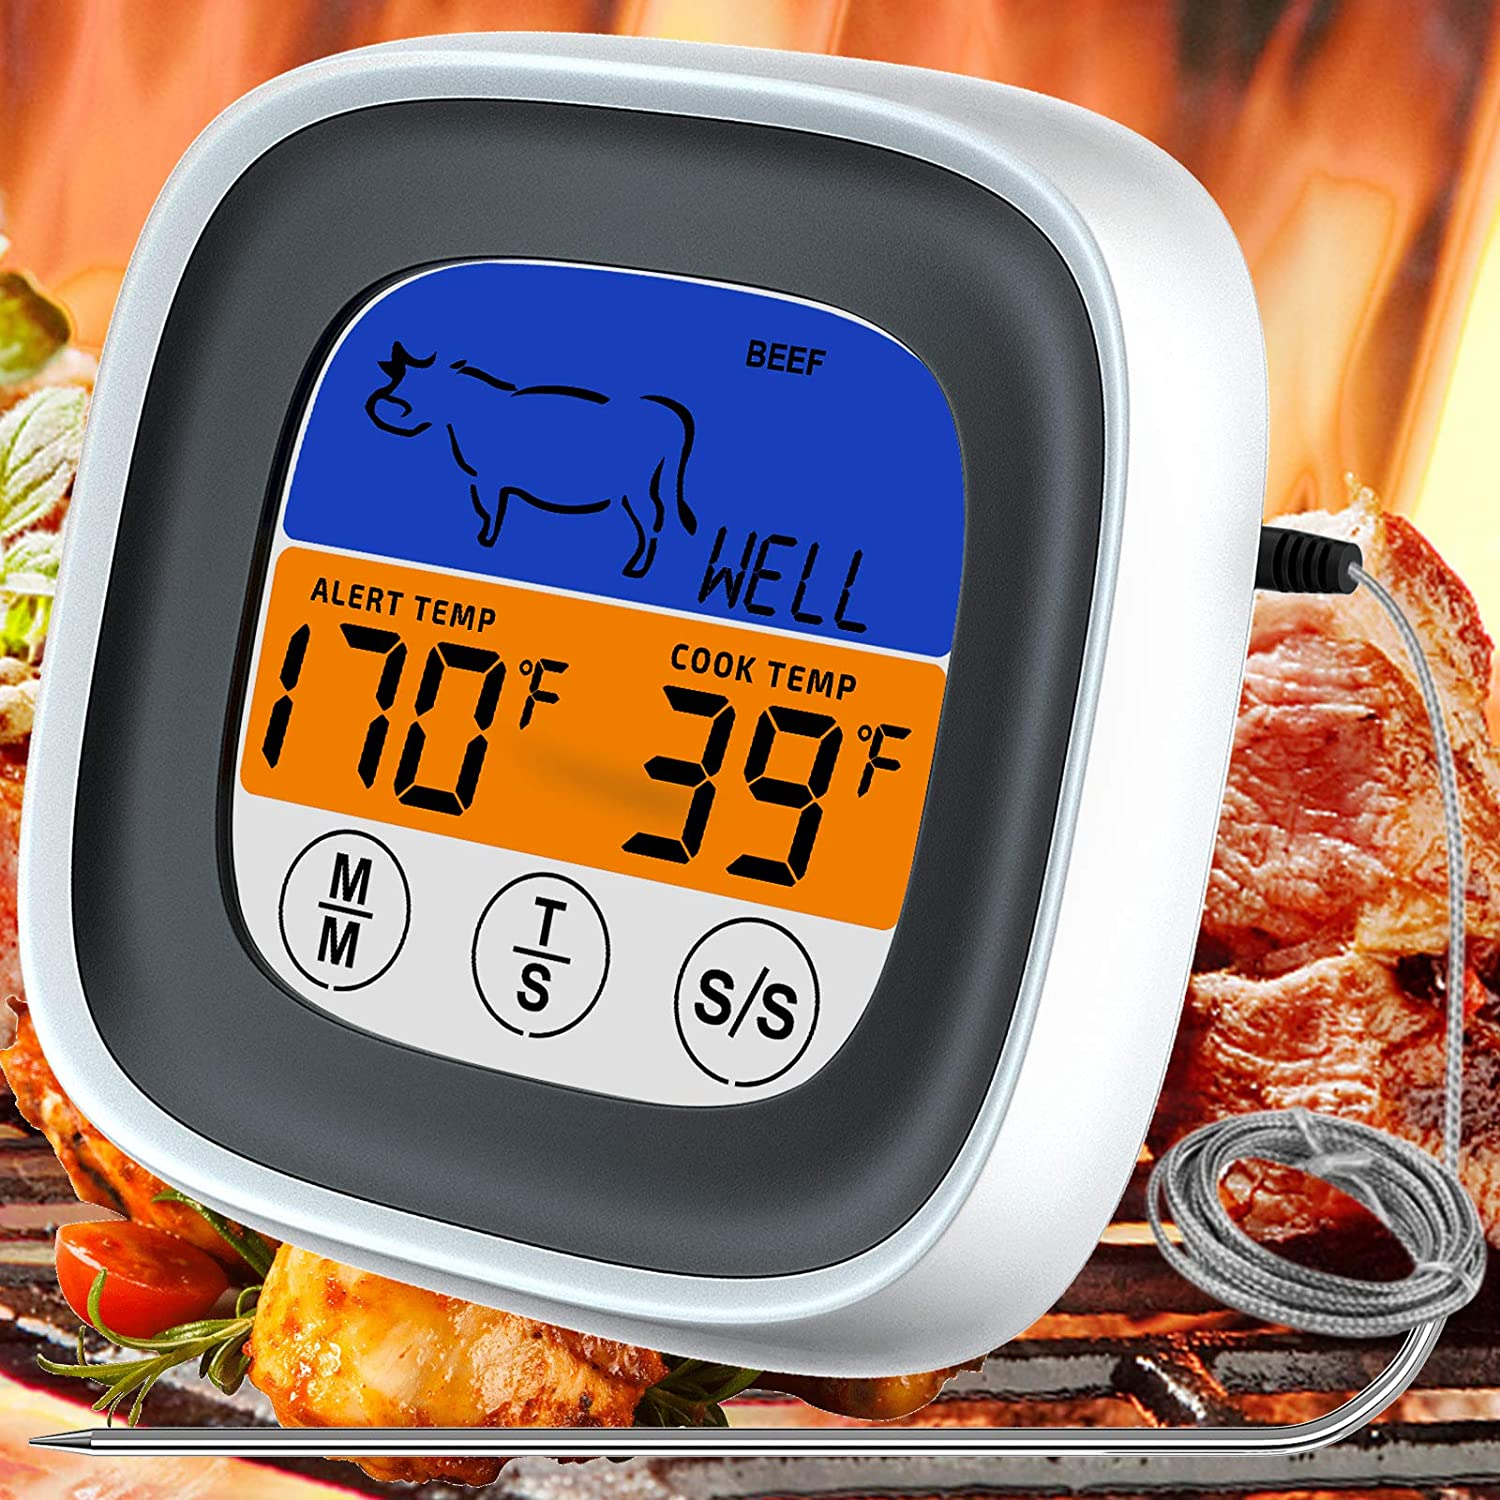 Skiroromg Meat Thermometer, Digital Instant Read Food Thermometer Wired Grilling Thermometer with Timer Stainless Steel Probe Touch Screen for BBQ Smoker Oven Grill Deep Fry Kitchen Food Cooking